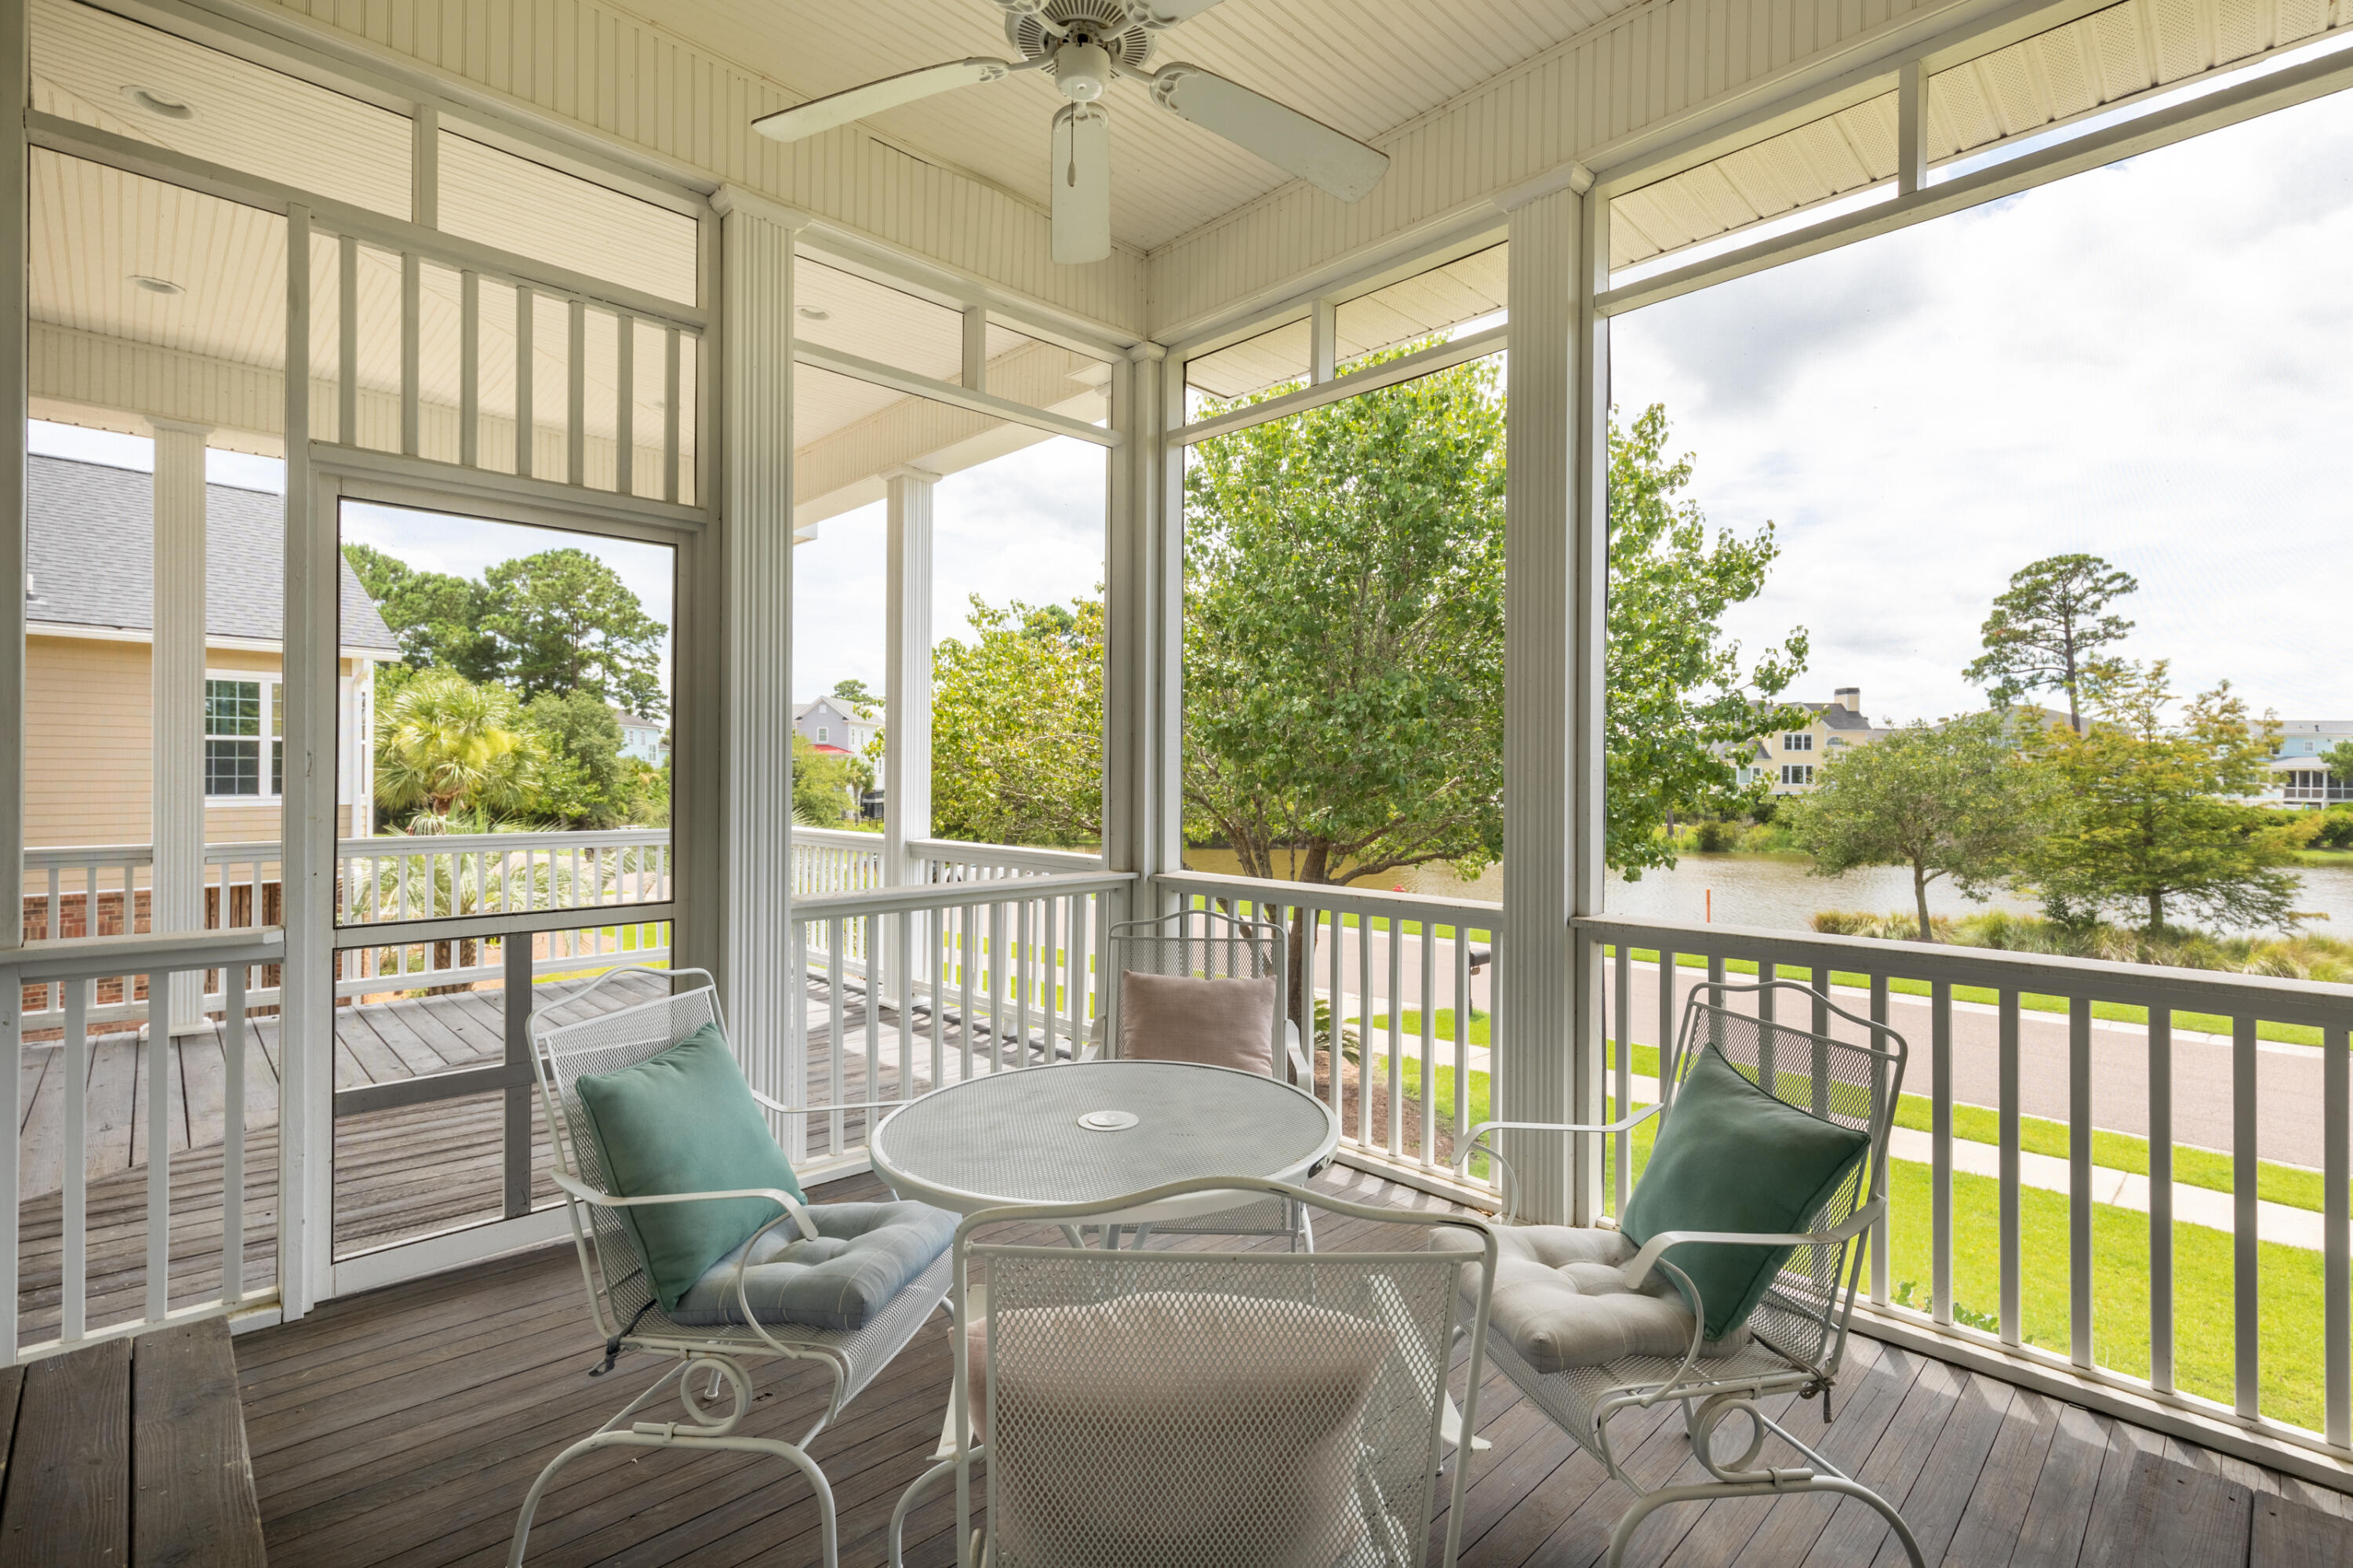 Rivertowne Country Club Homes For Sale - 1725 Rivertowne Country Club, Mount Pleasant, SC - 9